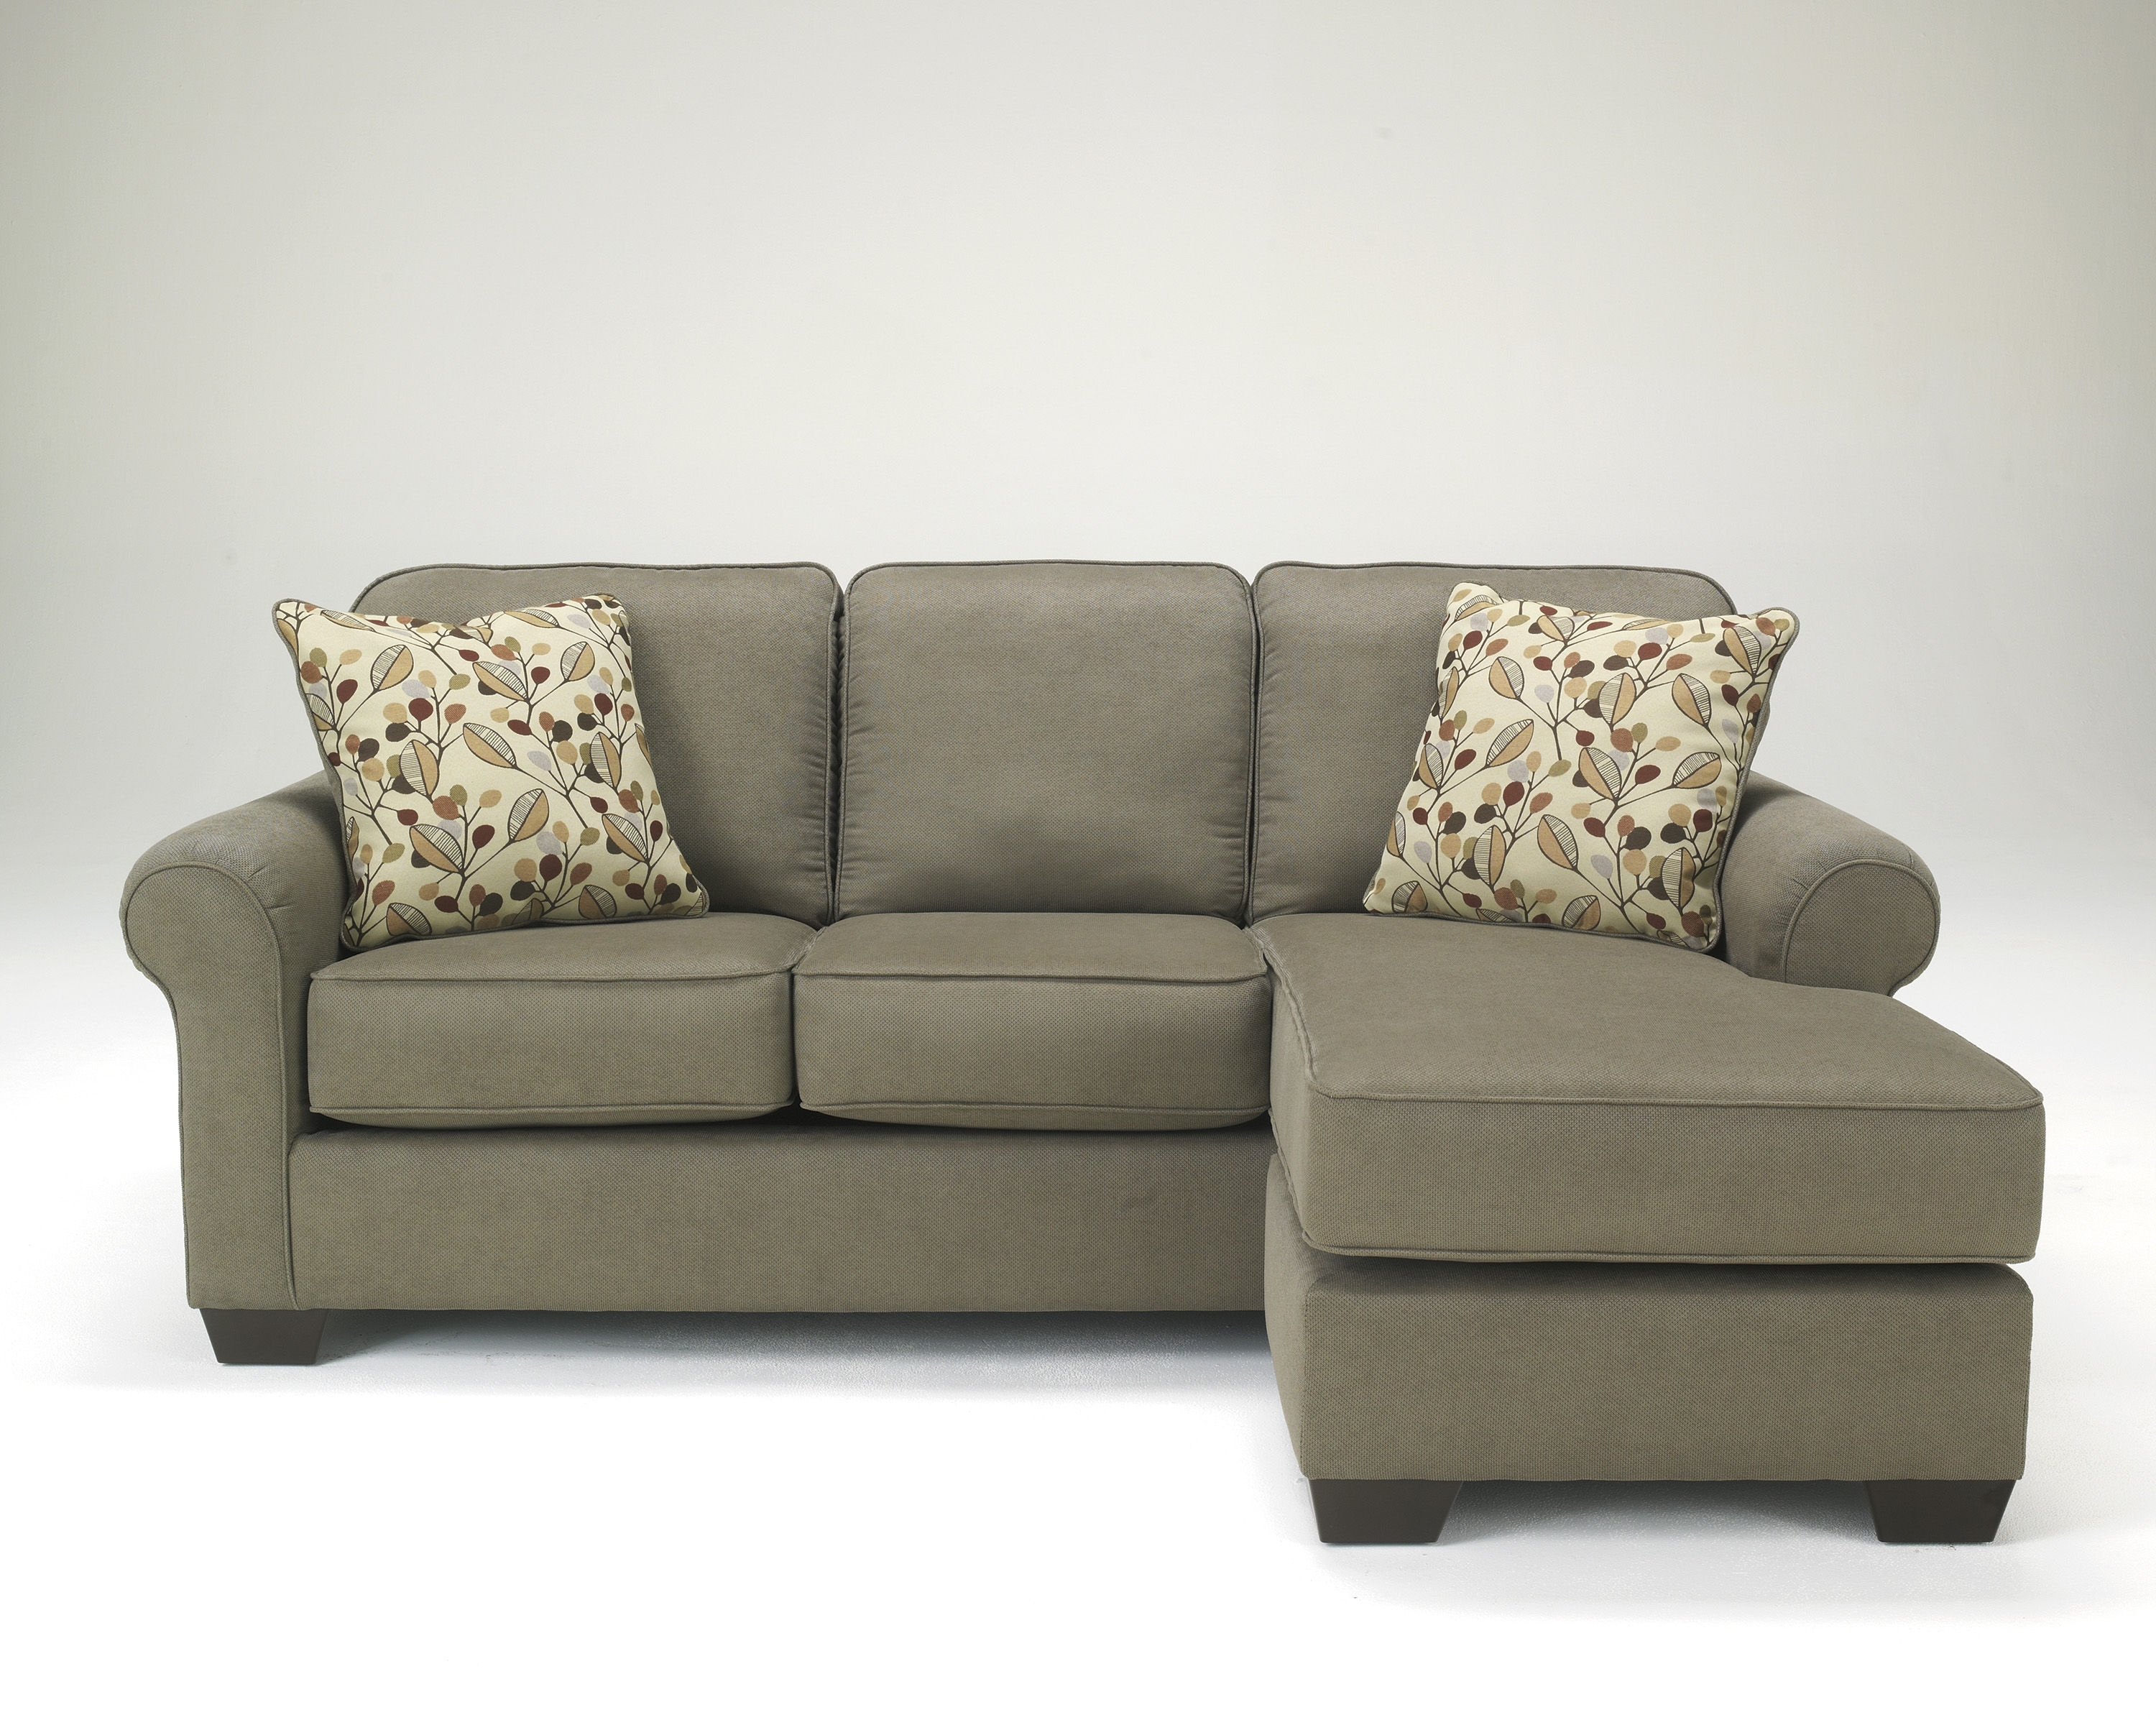 Loveseats With Chaise With Regard To Favorite Ashley Furniture Danely Dusk Sofa Chaise Sectional (View 10 of 15)